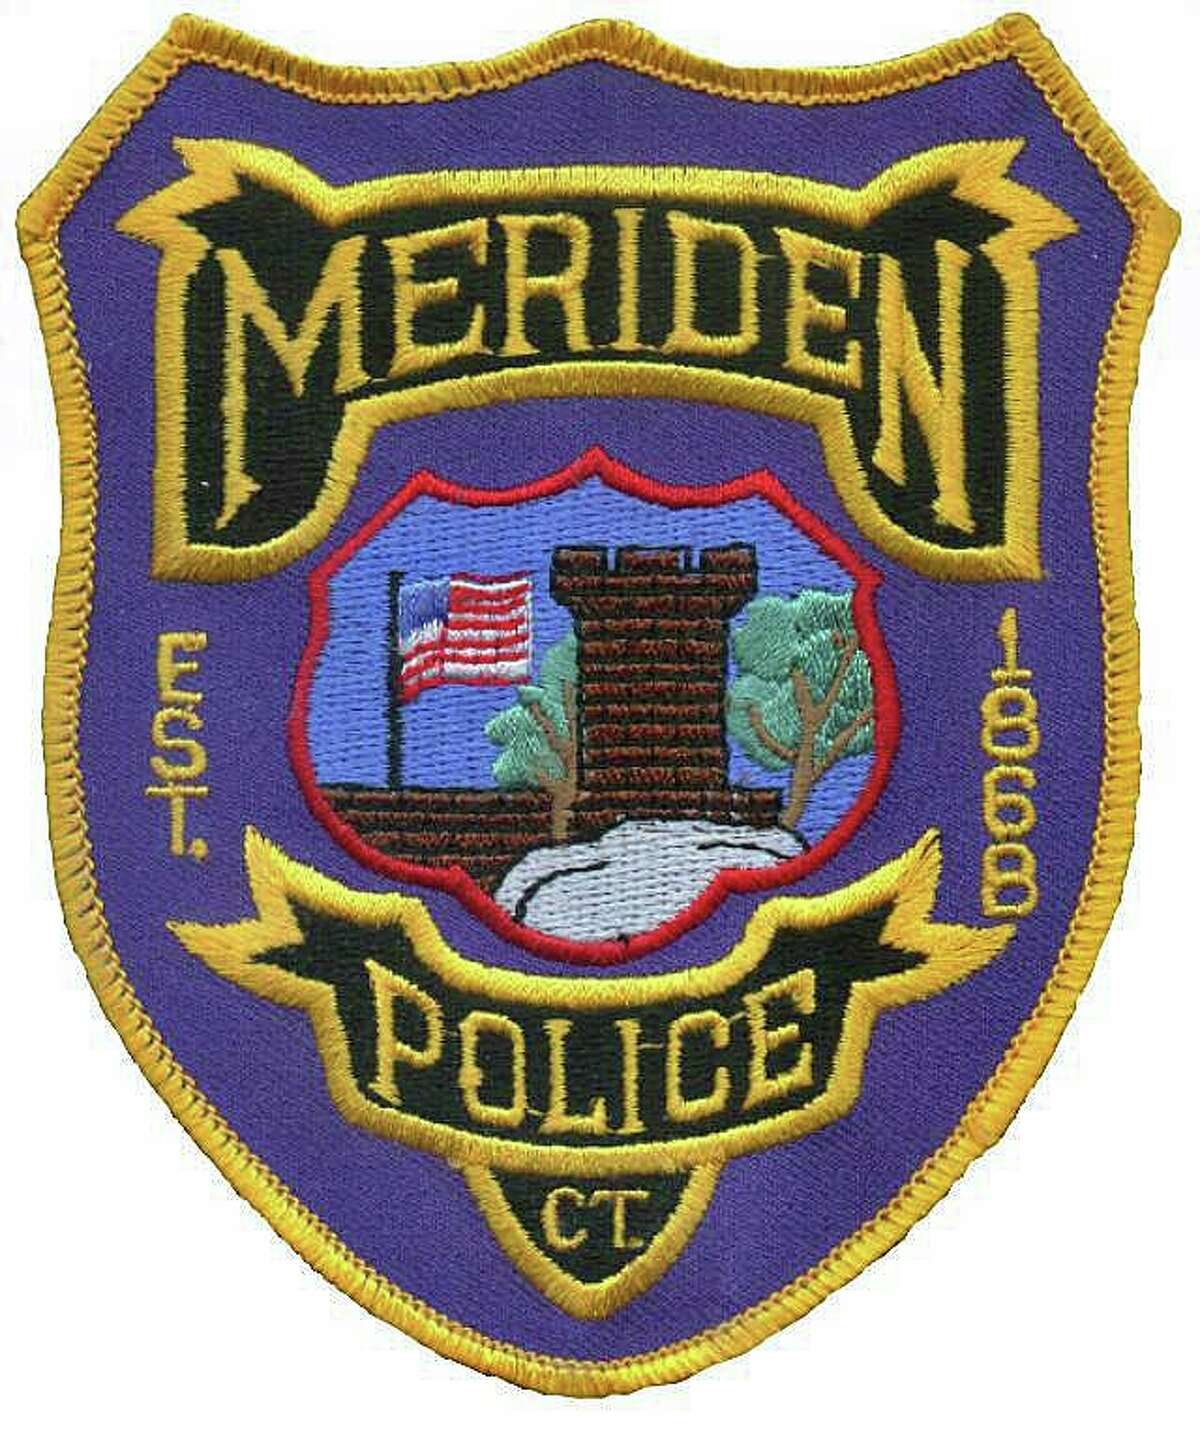 Days after more than 100 vehicles in Newington were burglarized - many with windows smashed - Meriden police reported similar incidents on Friday.